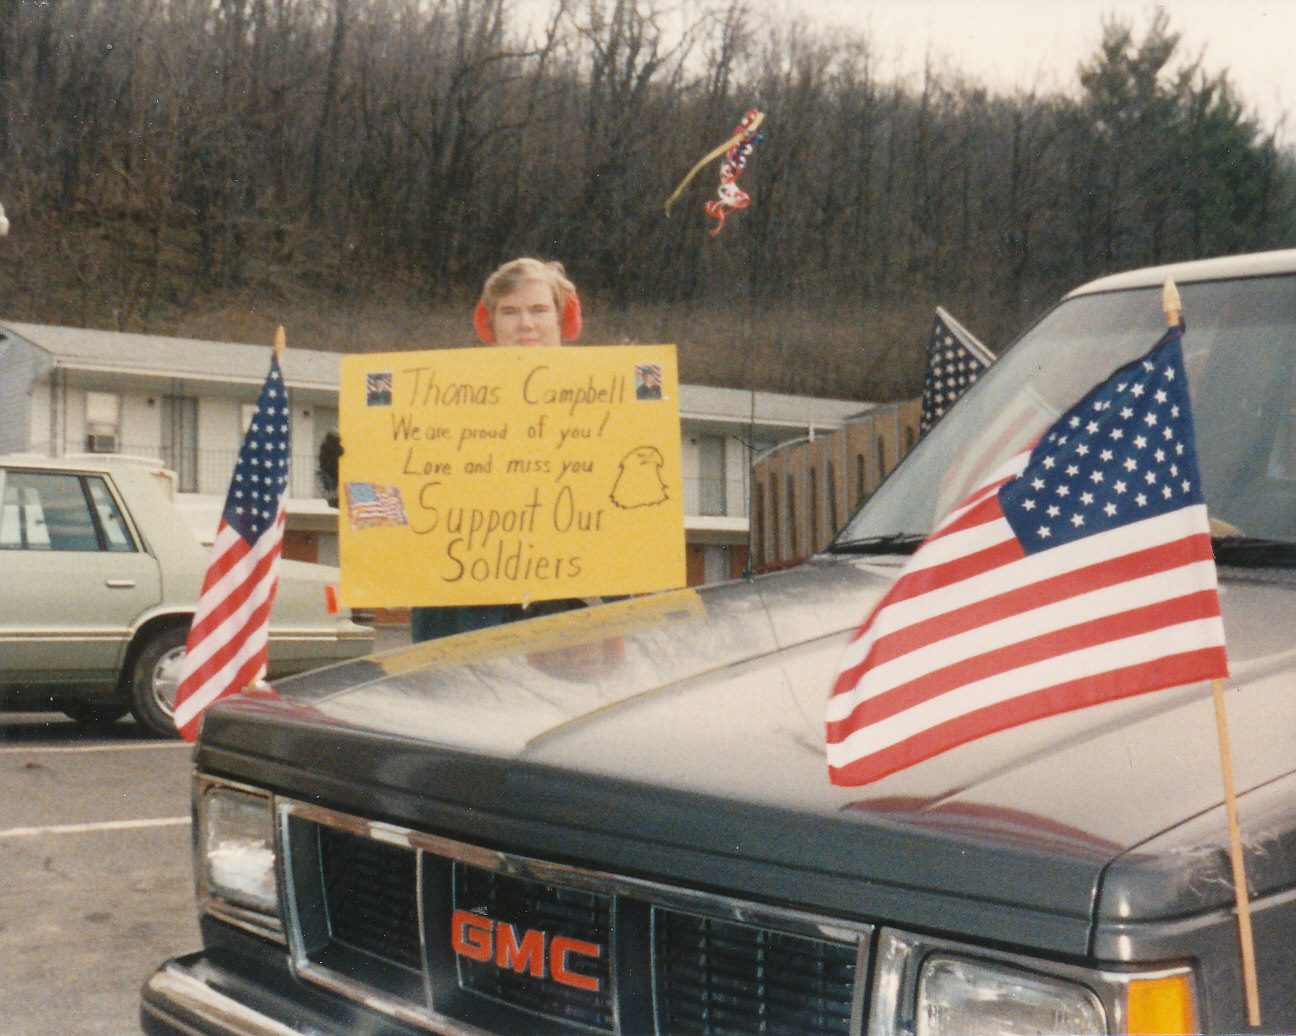 Woman standing behind a truck holding a homemade sign